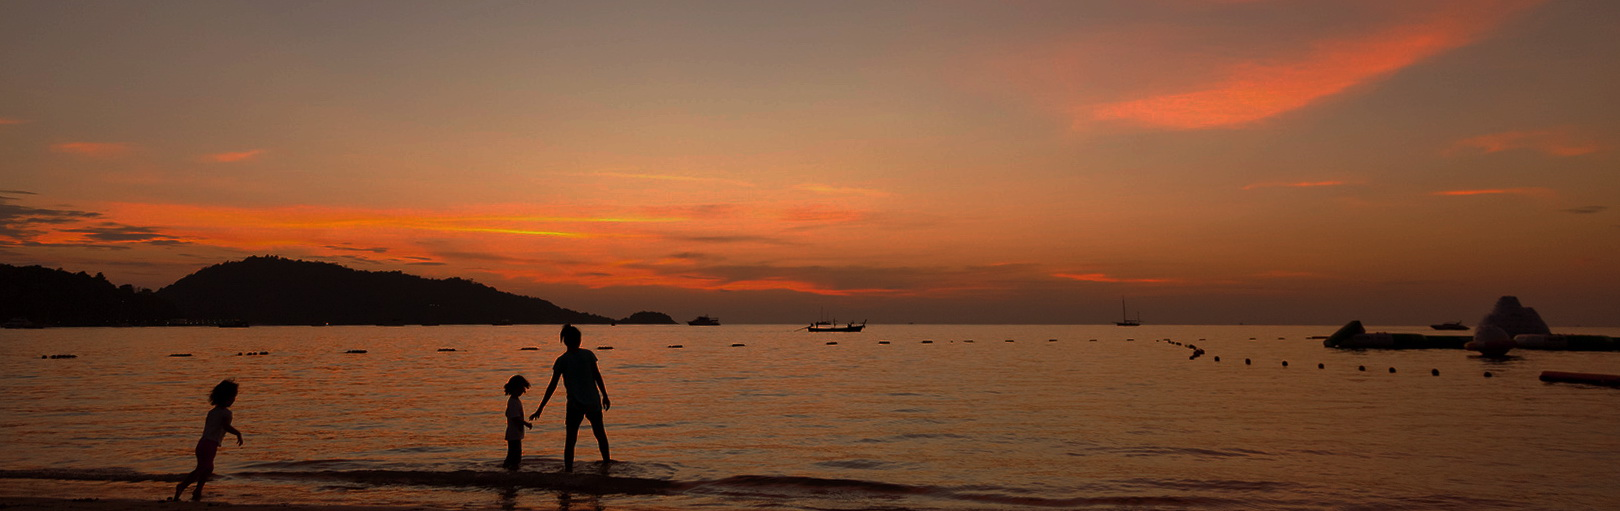 Phuket, Thailand - March 16, 2011 : Mother and children enjoying the beuatiful sunset at Patong Beach in Phuket